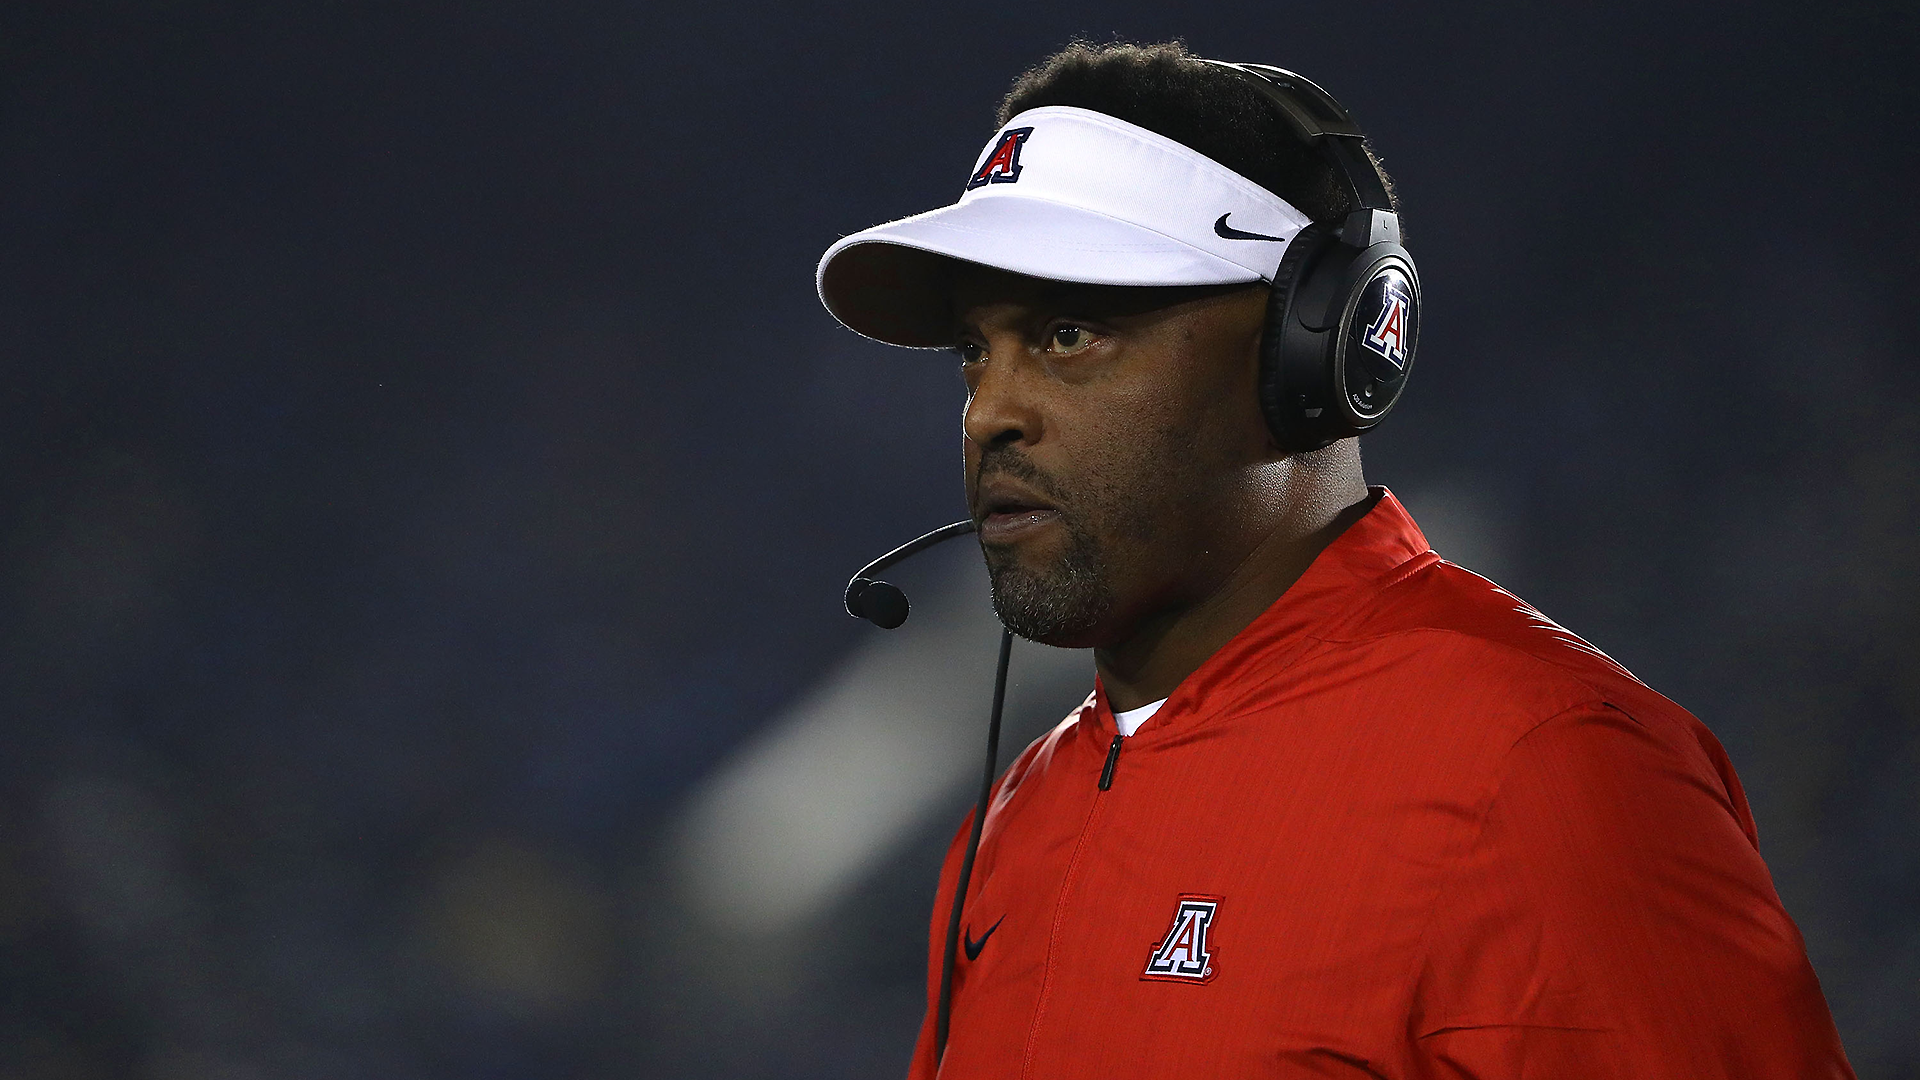 Texas A&M fans roast Kevin Sumlin after ex-coach's apparent shade at Auburn loss